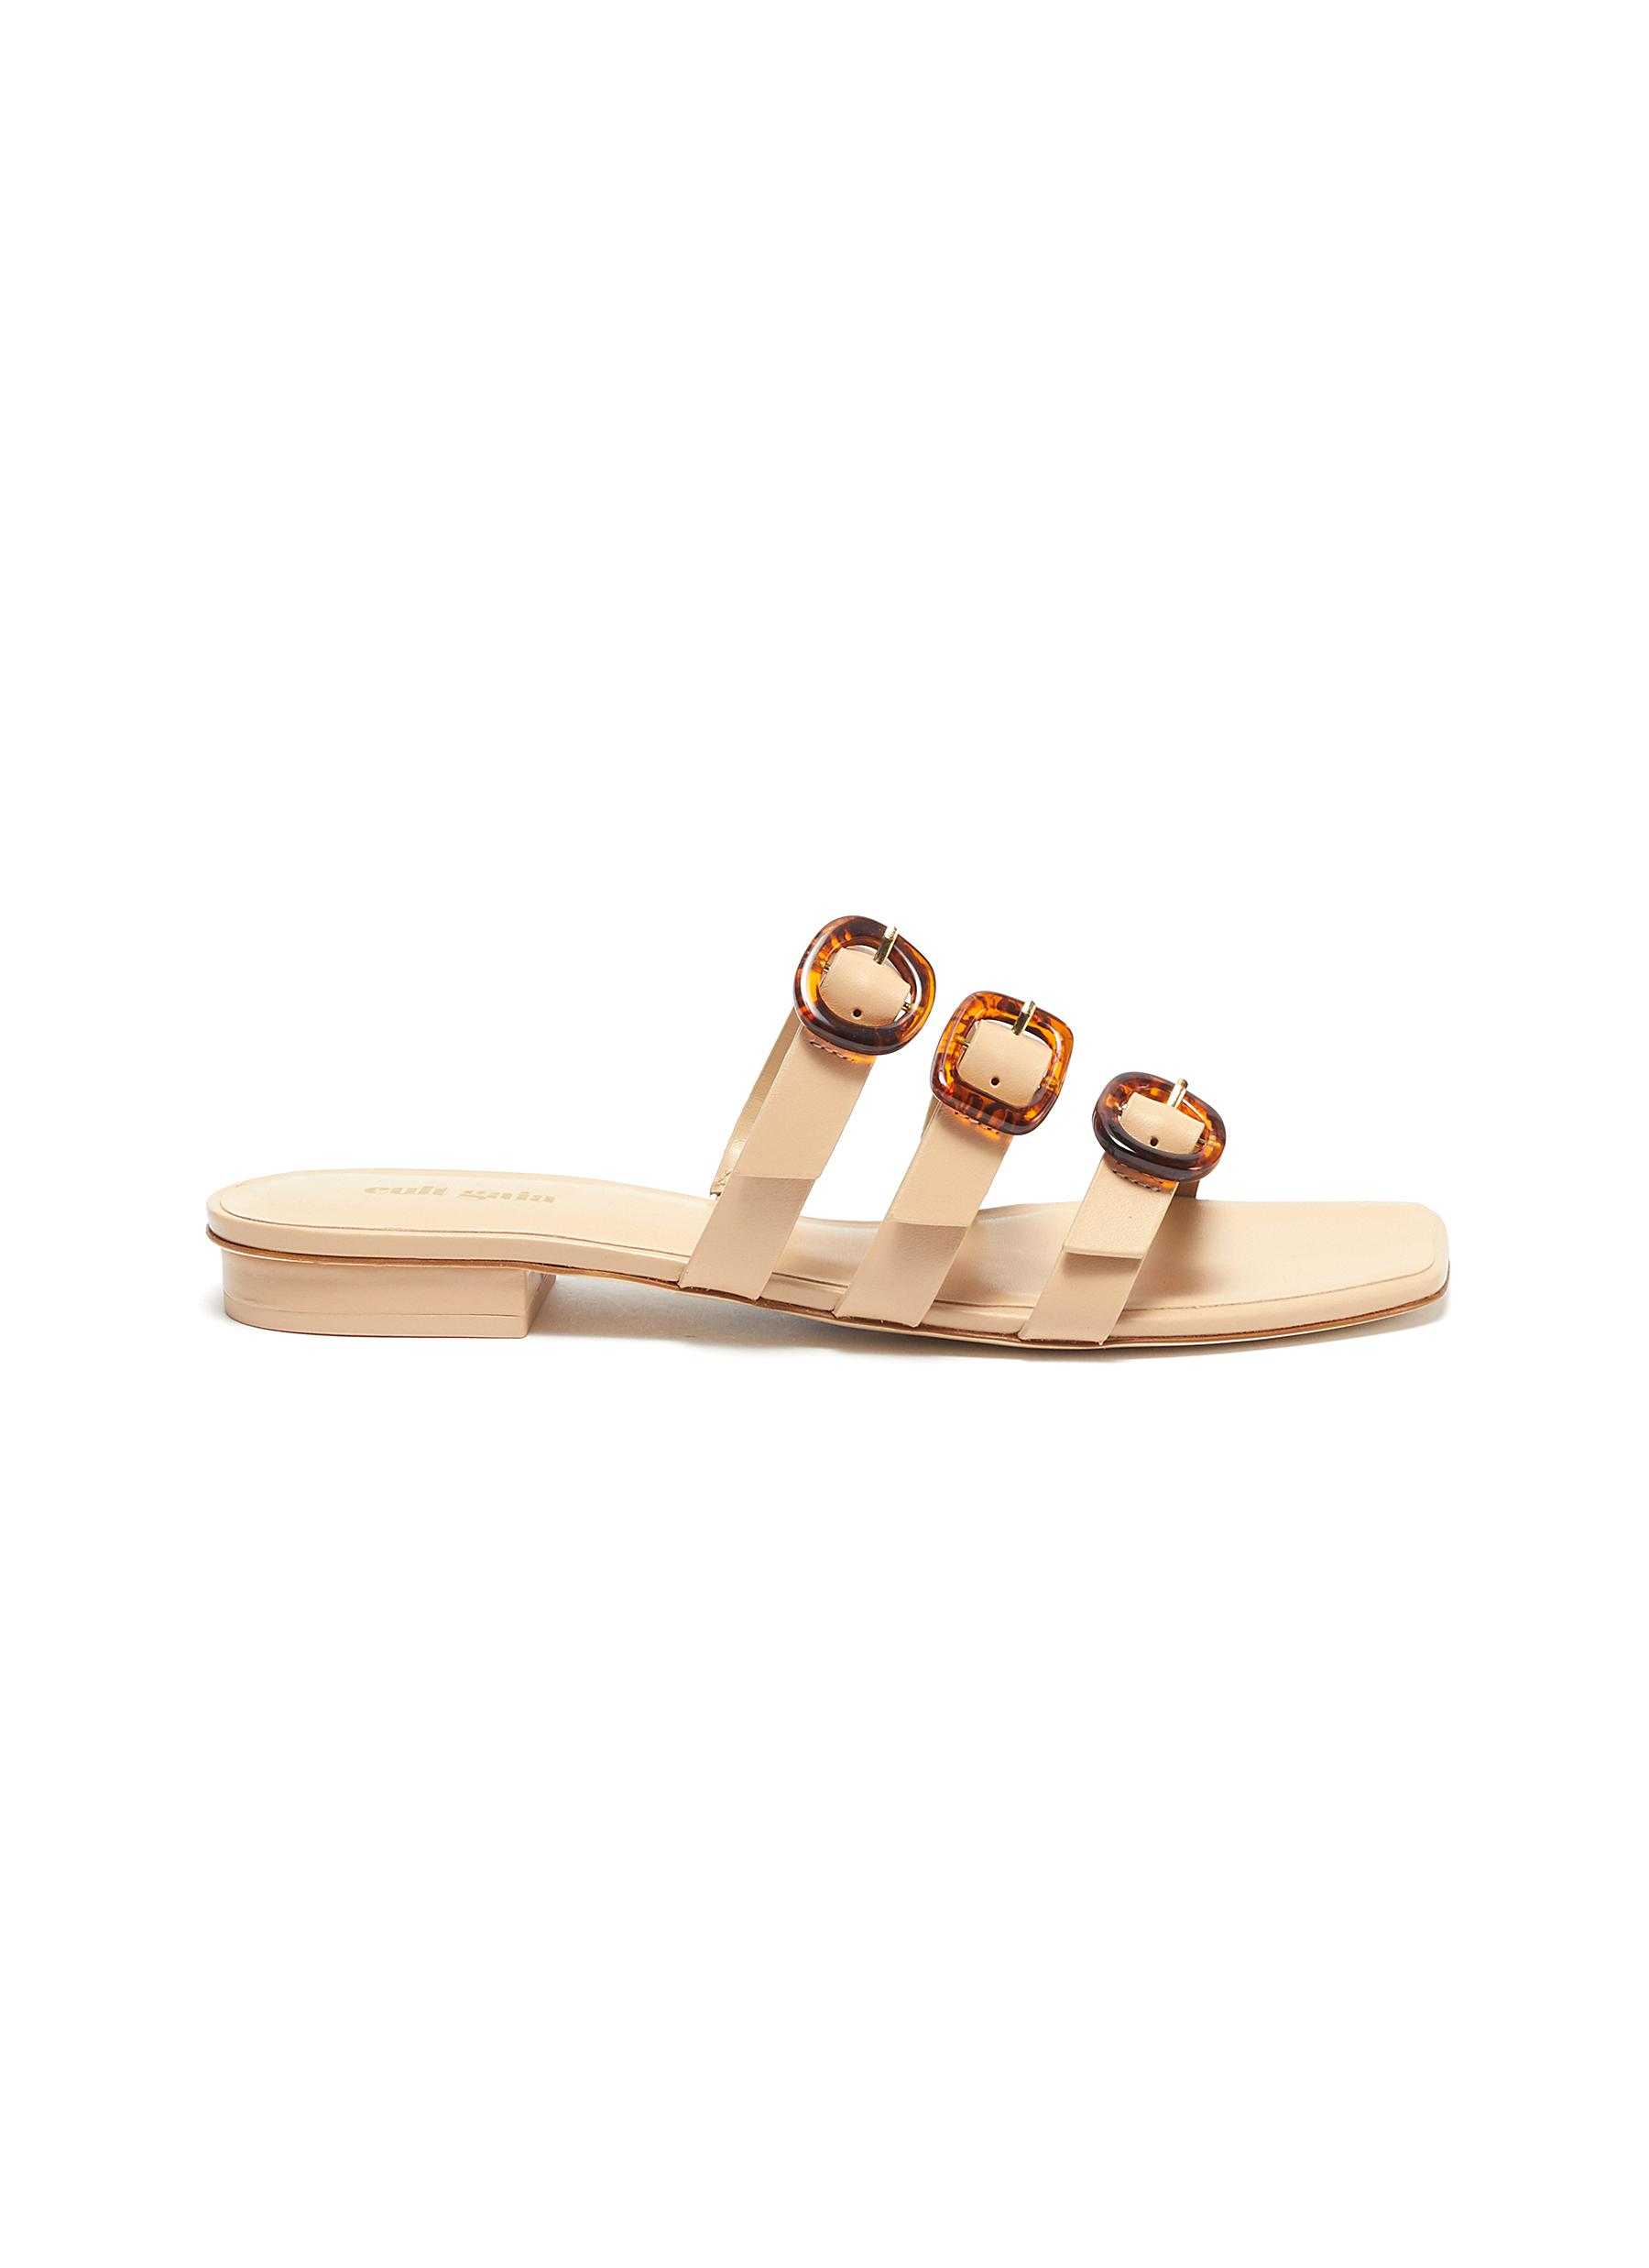 Cult Gaia Flats Tallulah buckle leather sandals